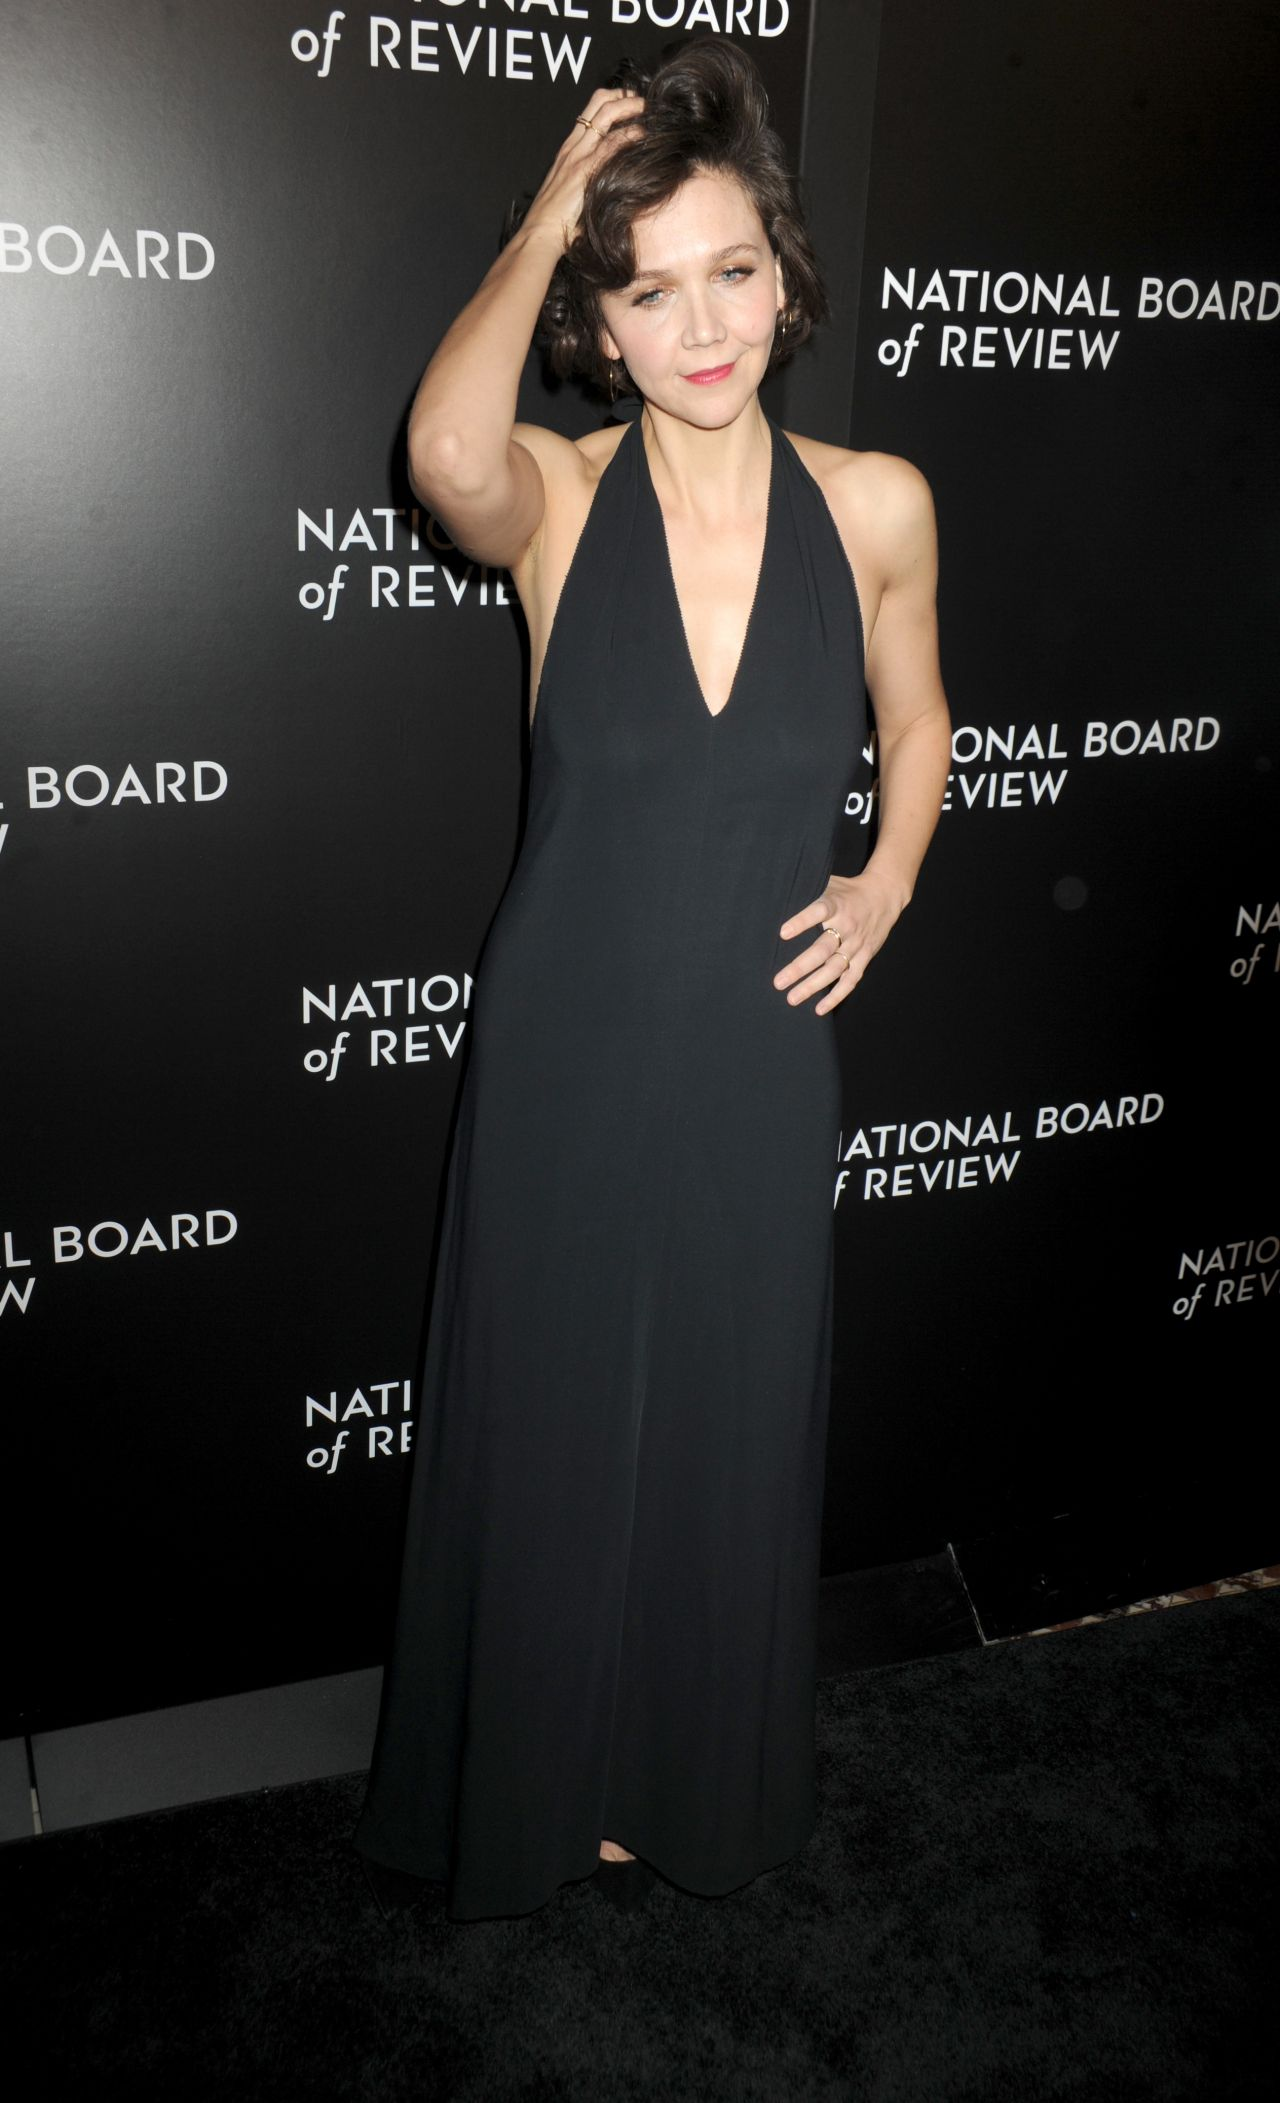 maggie-gyllenhaal-2015-national-board-of-review-awards-gala-in-new-york-city-3